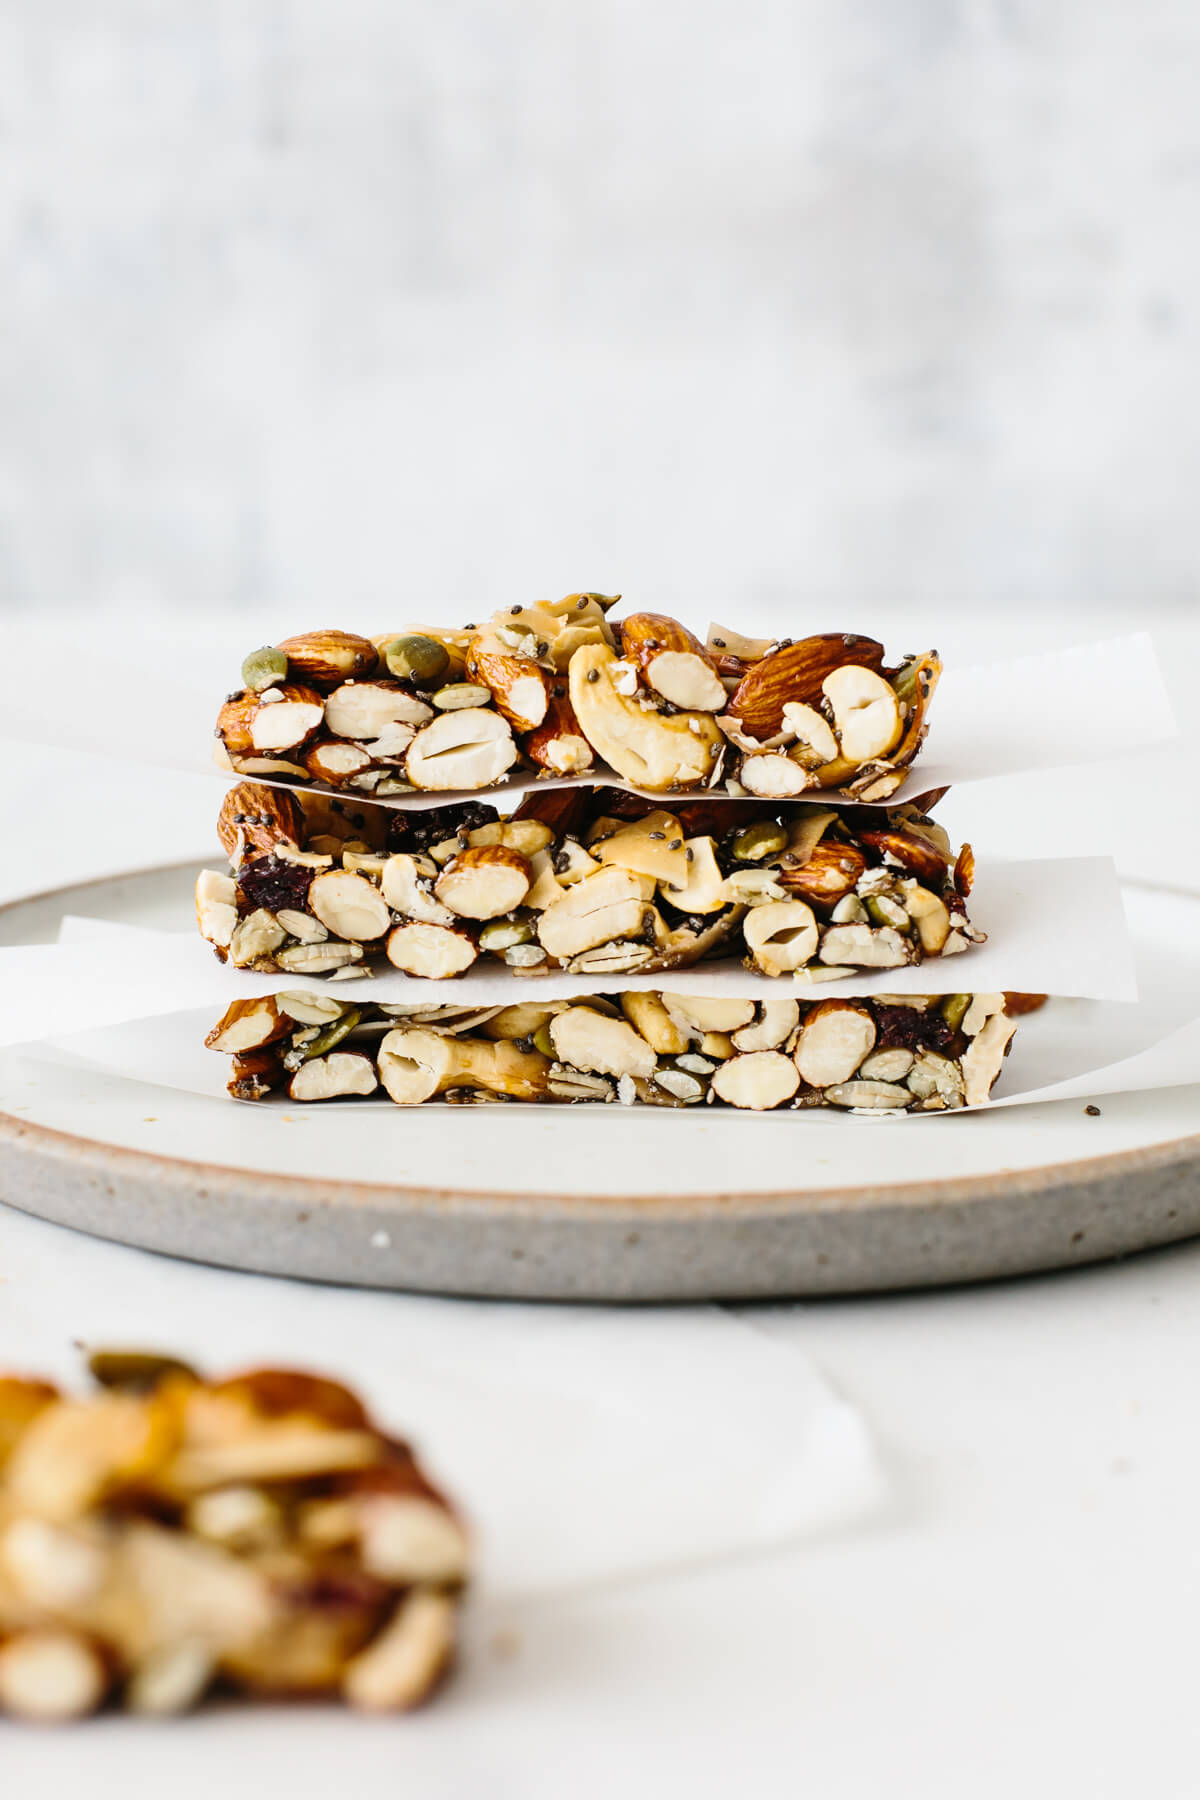 Three granola bars stacked on top of each other on a plate with parchment paper in between.